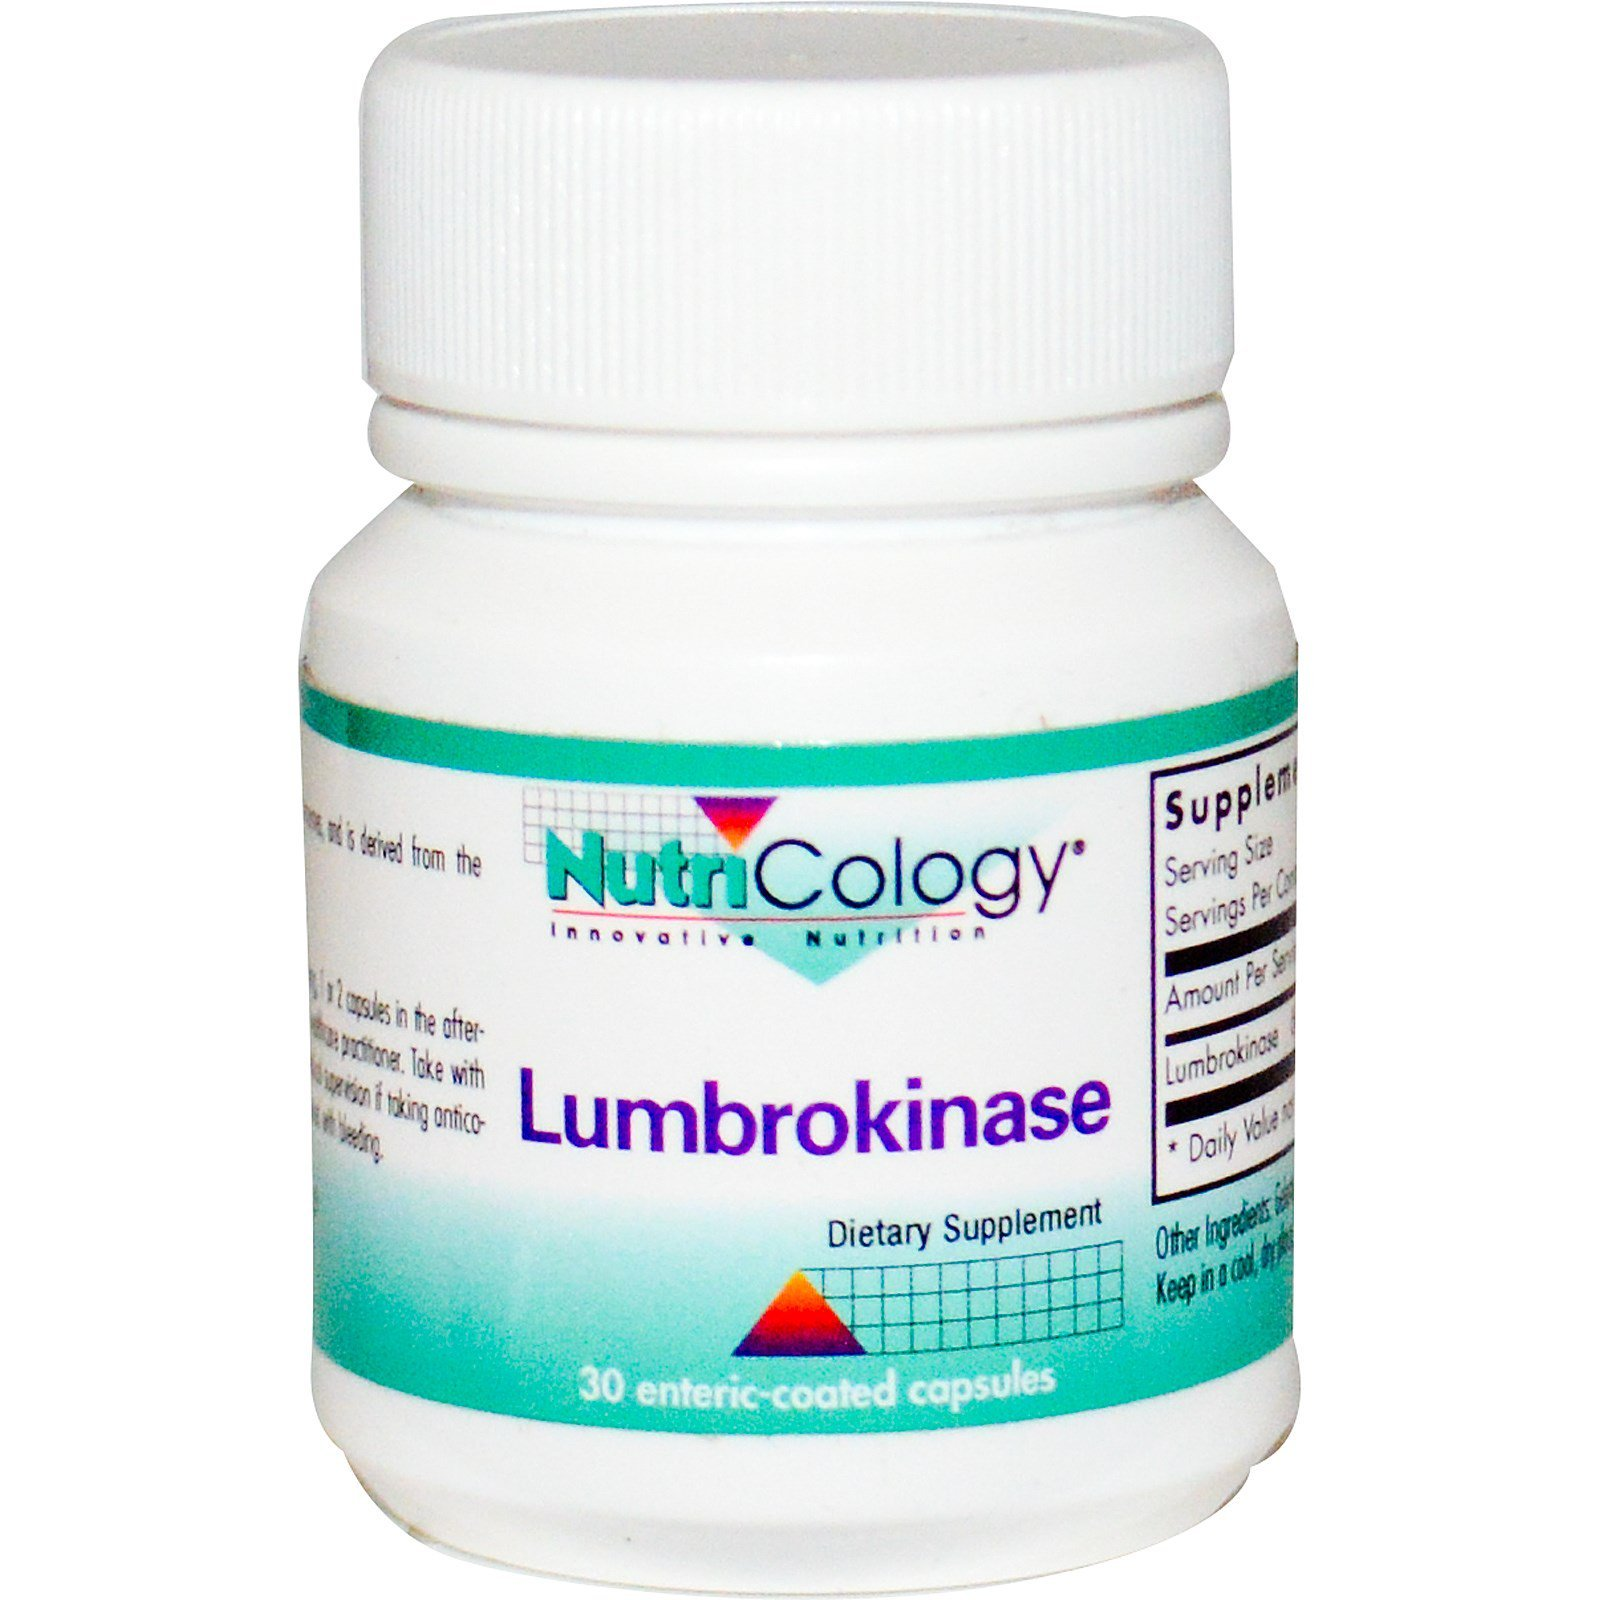 Nutricology, Lumbrokinase, 30 Enteric-Coated Capsules (Discontinued Item)